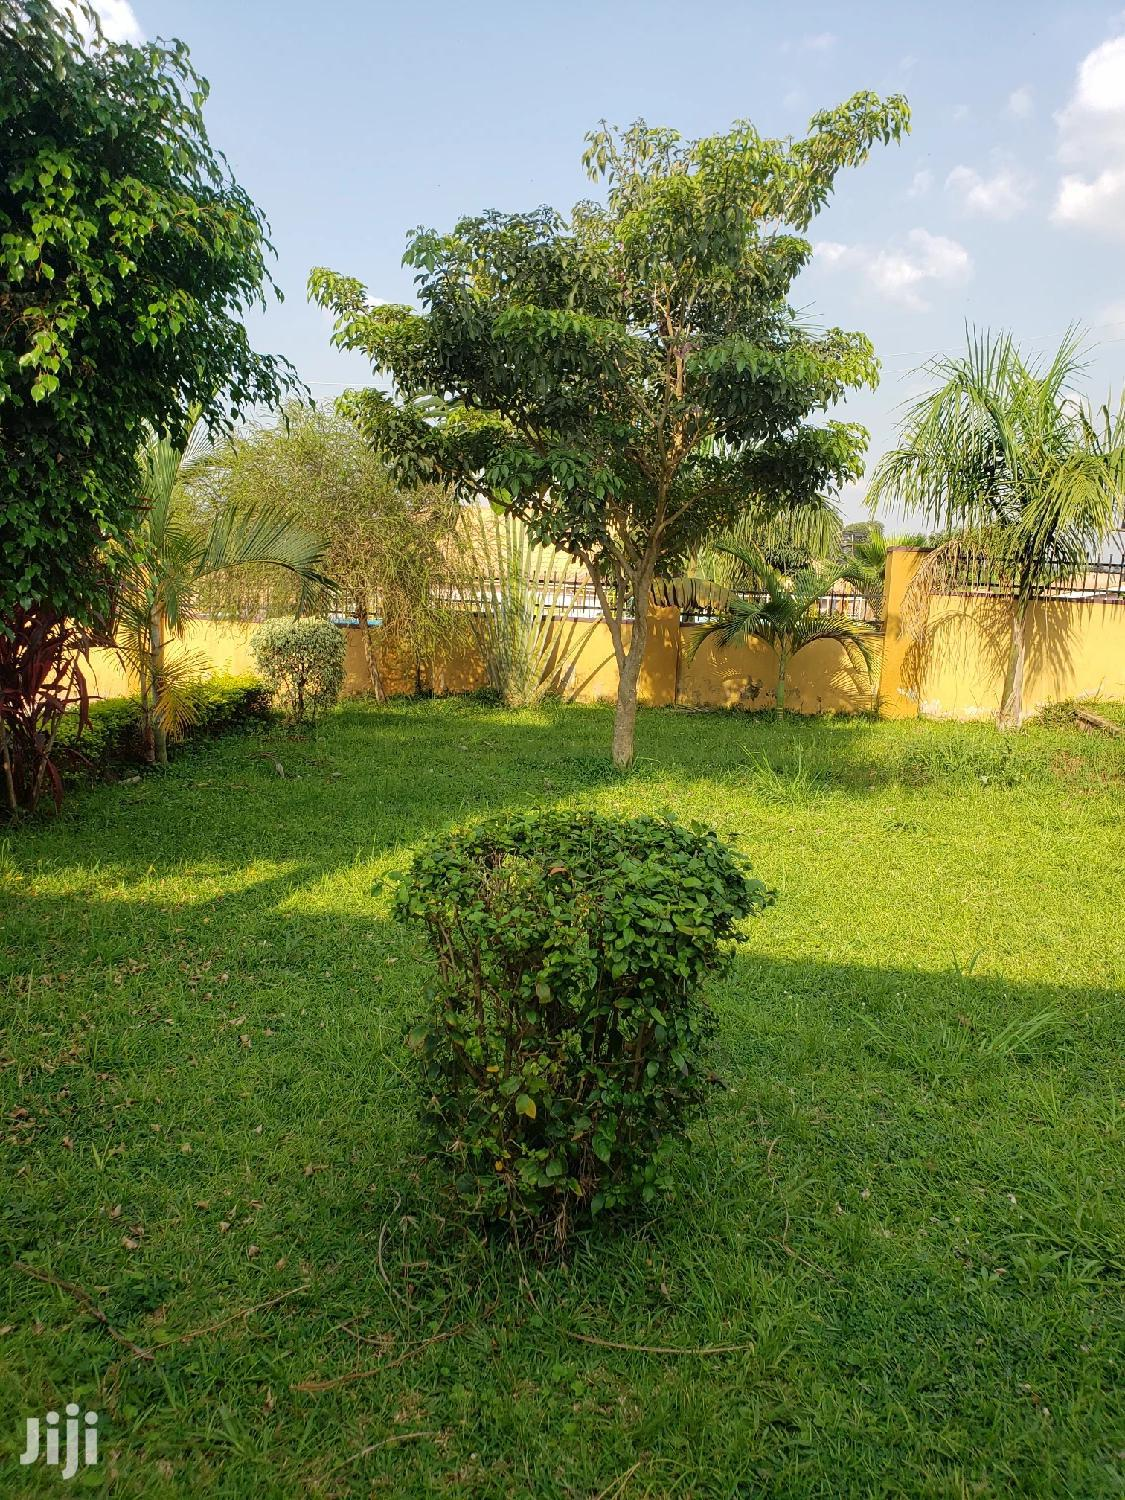 Mengo 5 Bedrooms Banglow House For Rent   Houses & Apartments For Rent for sale in Kampala, Central Region, Uganda